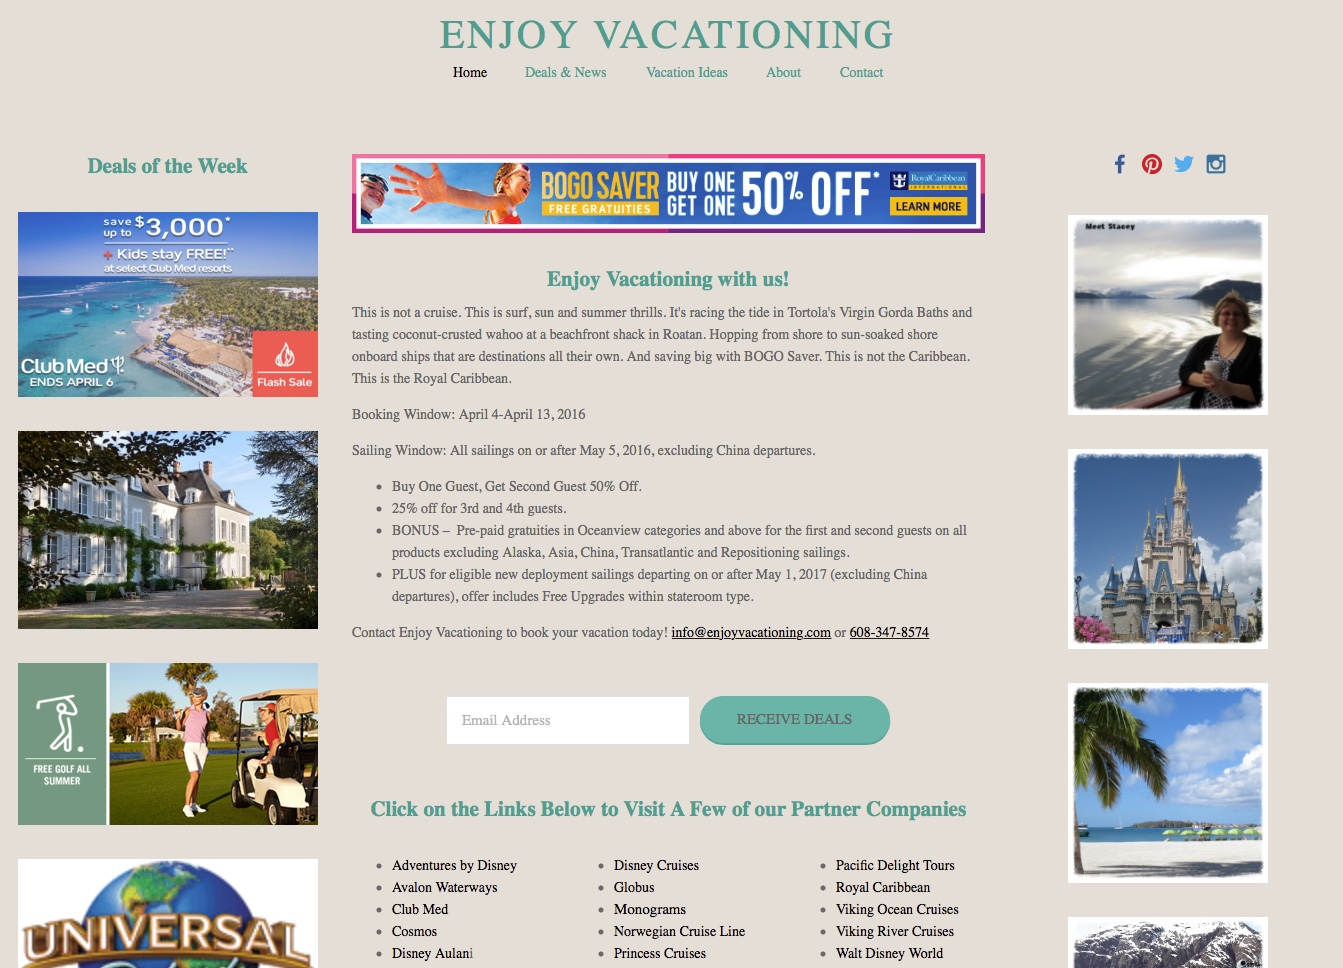 New Enjoy Vacationing website makes it easier to find travel deals and content!